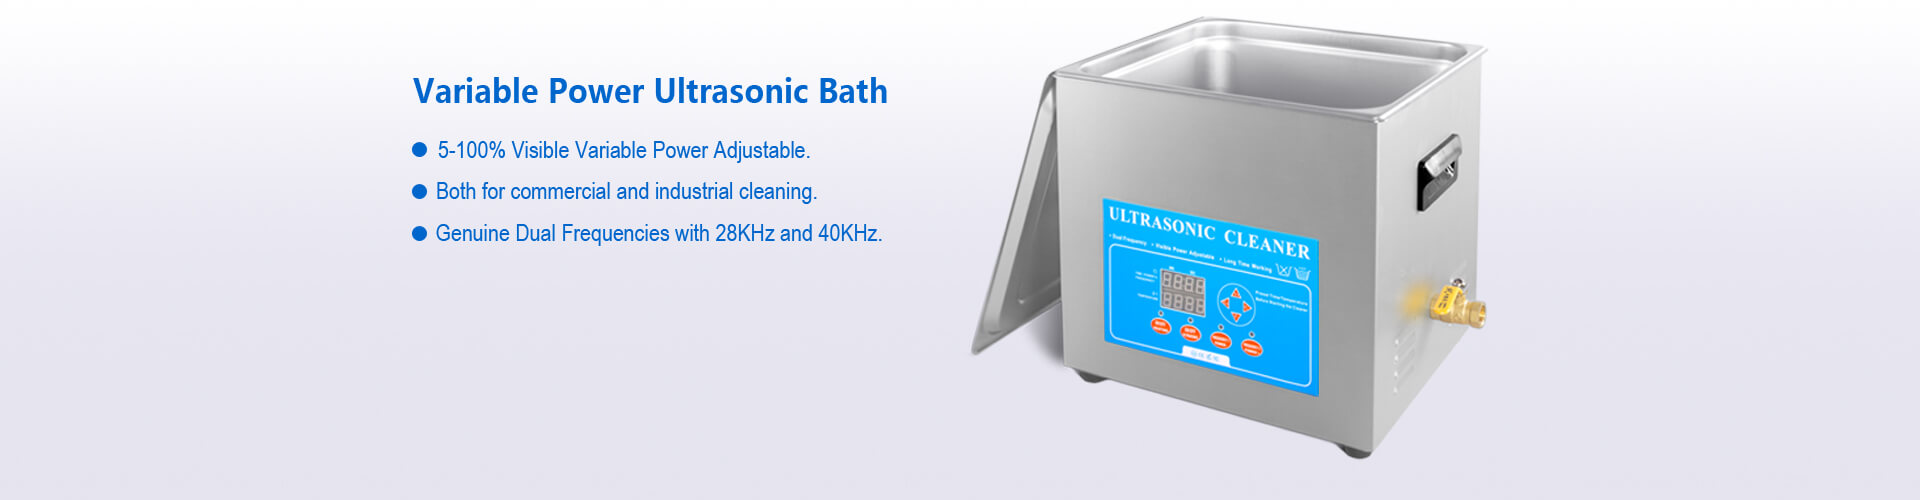 Variable Power Ultrasonic Bath Sonicator